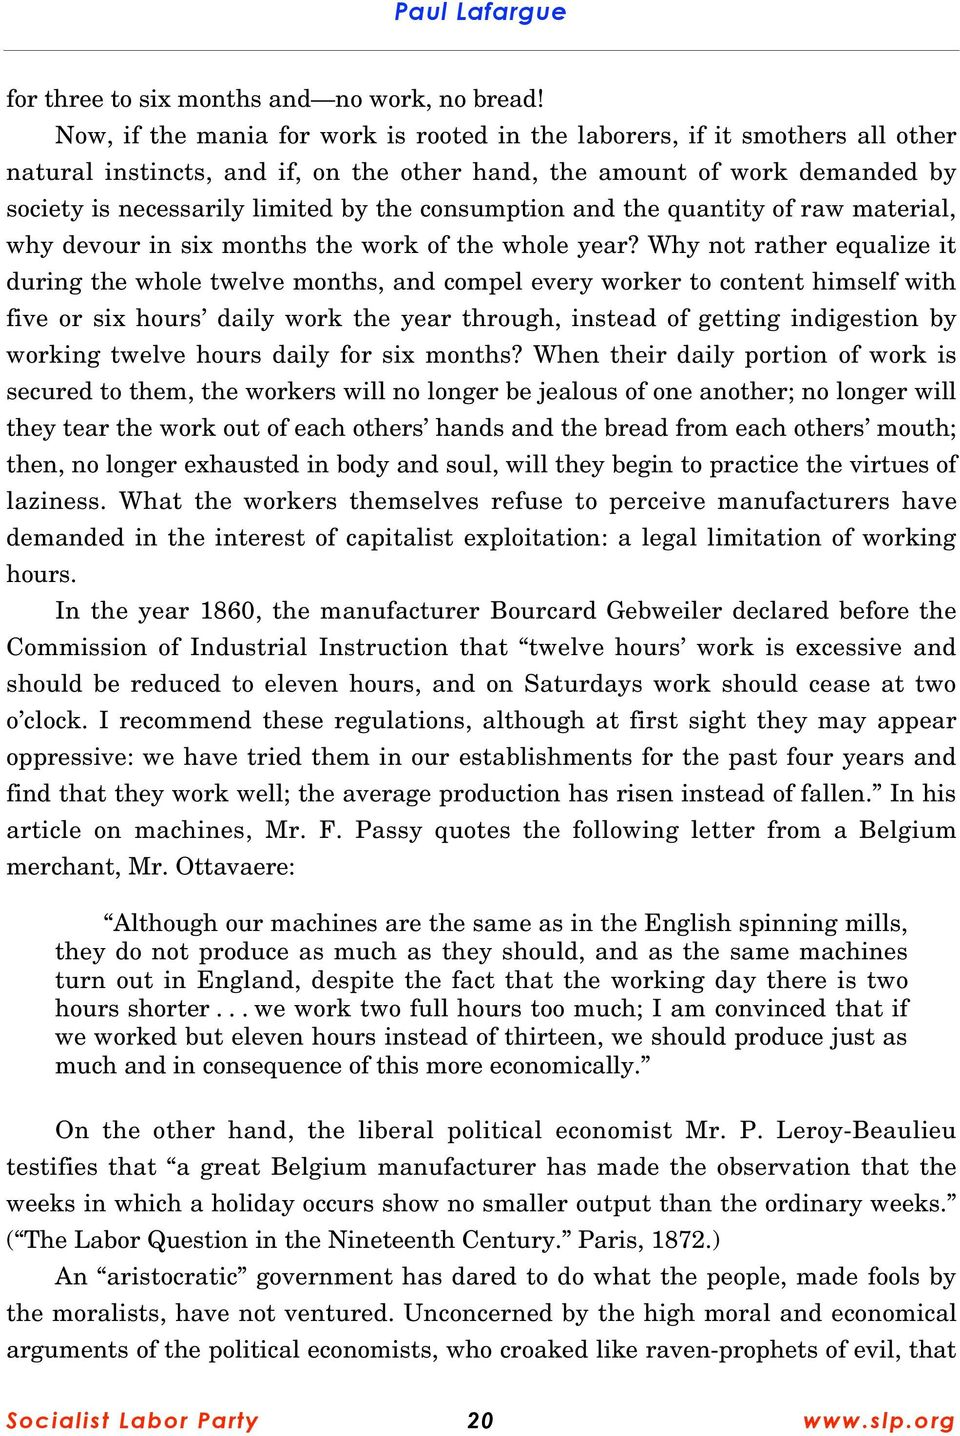 The great experience of England, the experience of intelligent capitalists{,} is submitted; they prove it incontrovertibly that the working time must be shortened and the days of rest must be